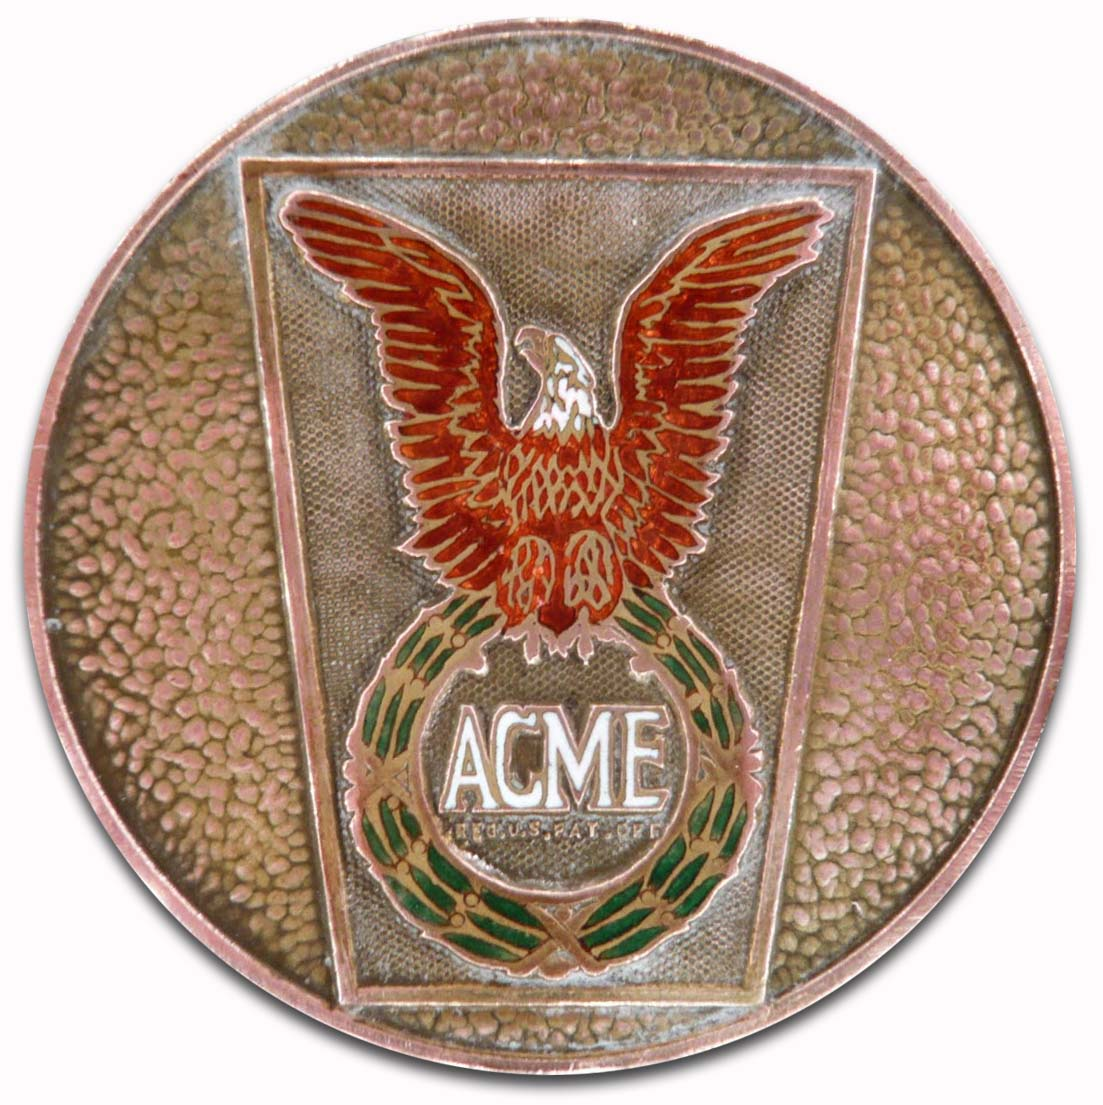 1910. Acme Motor Car Co.